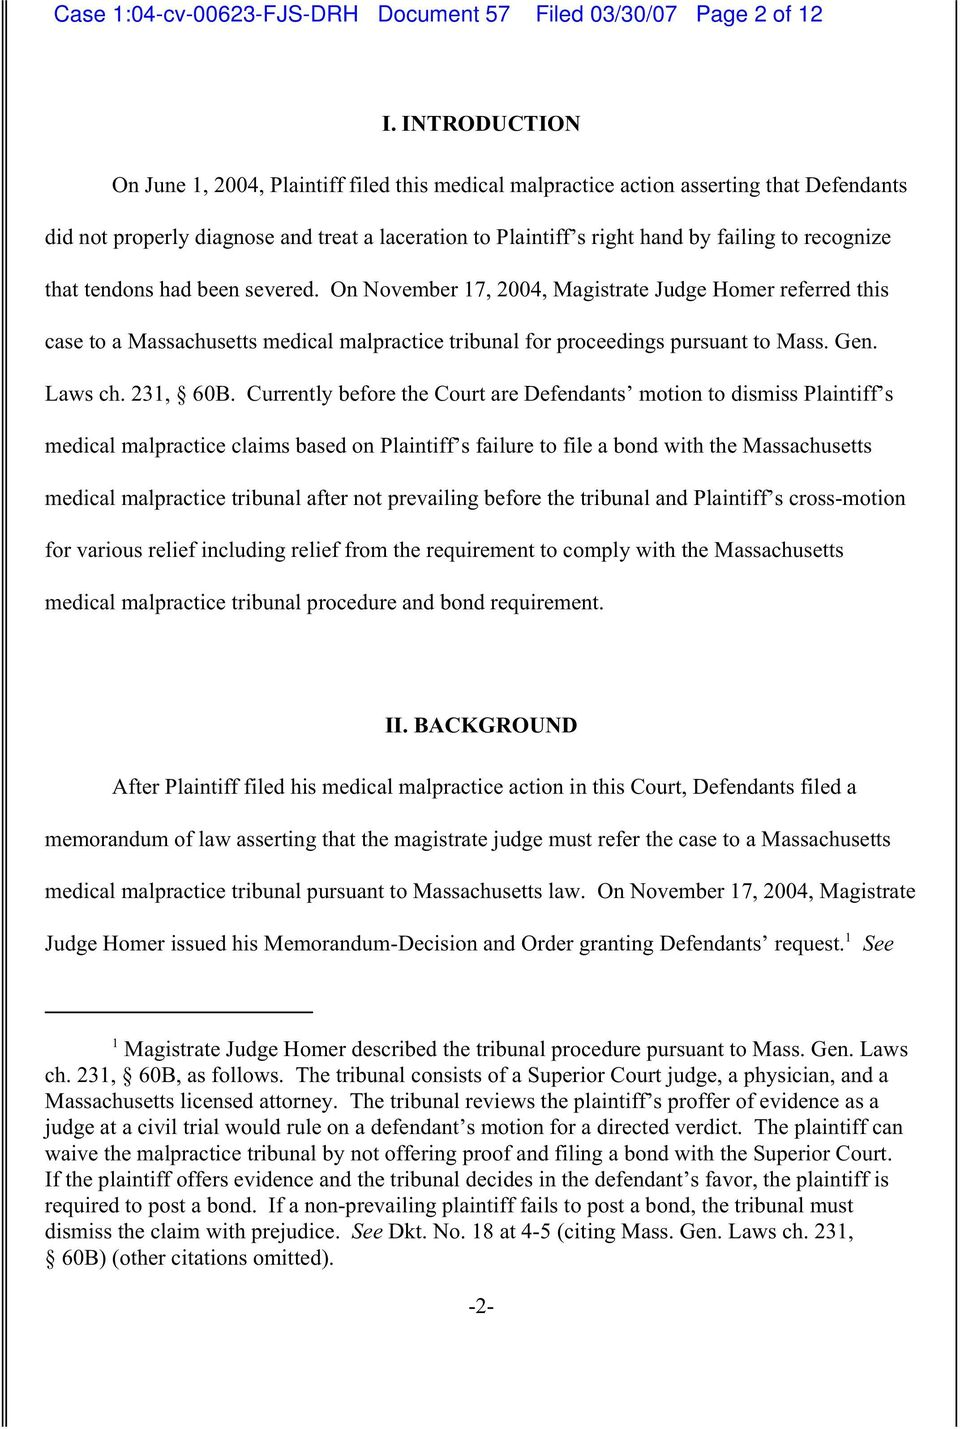 recognize that tendons had been severed. On November 17, 2004, Magistrate Judge Homer referred this case to a Massachusetts medical malpractice tribunal for proceedings pursuant to Mass. Gen. Laws ch.